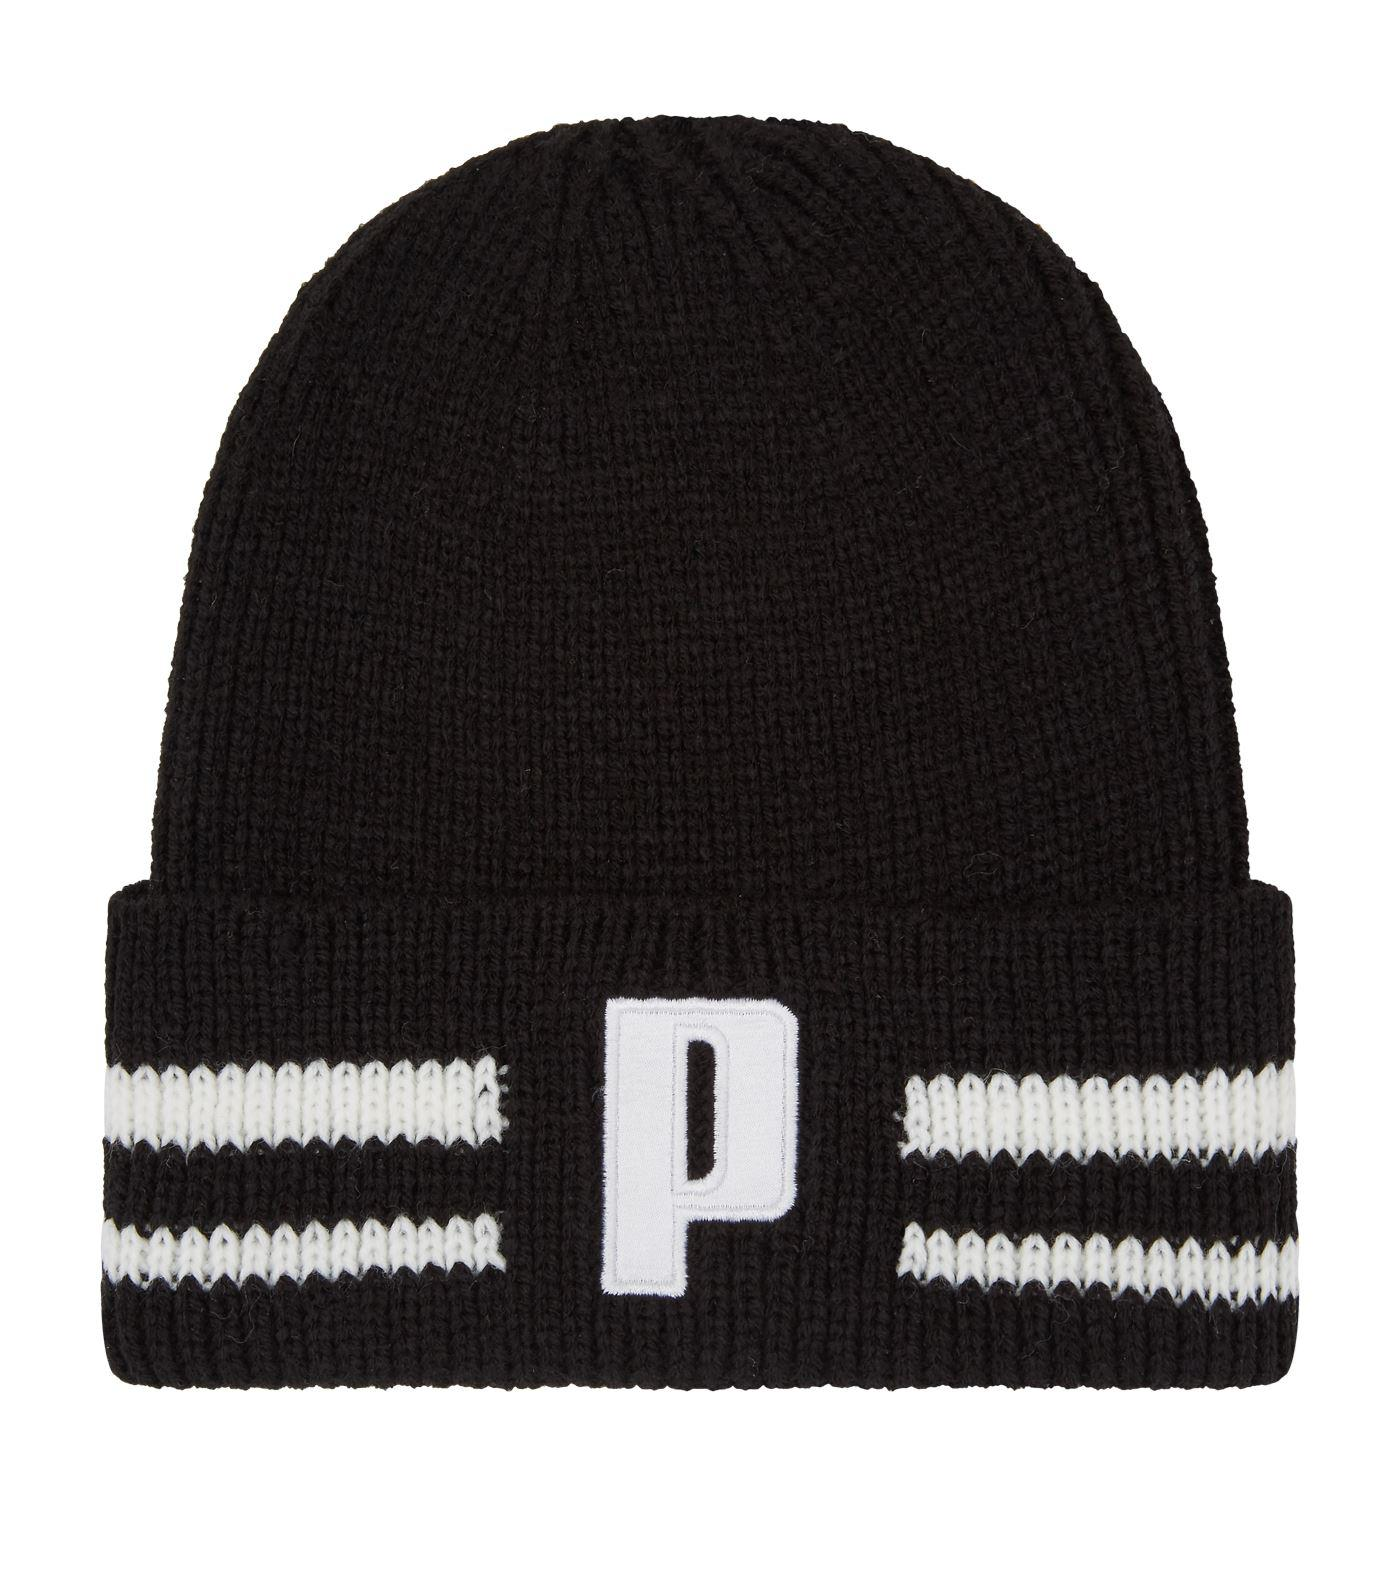 3964f86f PUMA Retro Beanie in Black for Men - Save 36% - Lyst